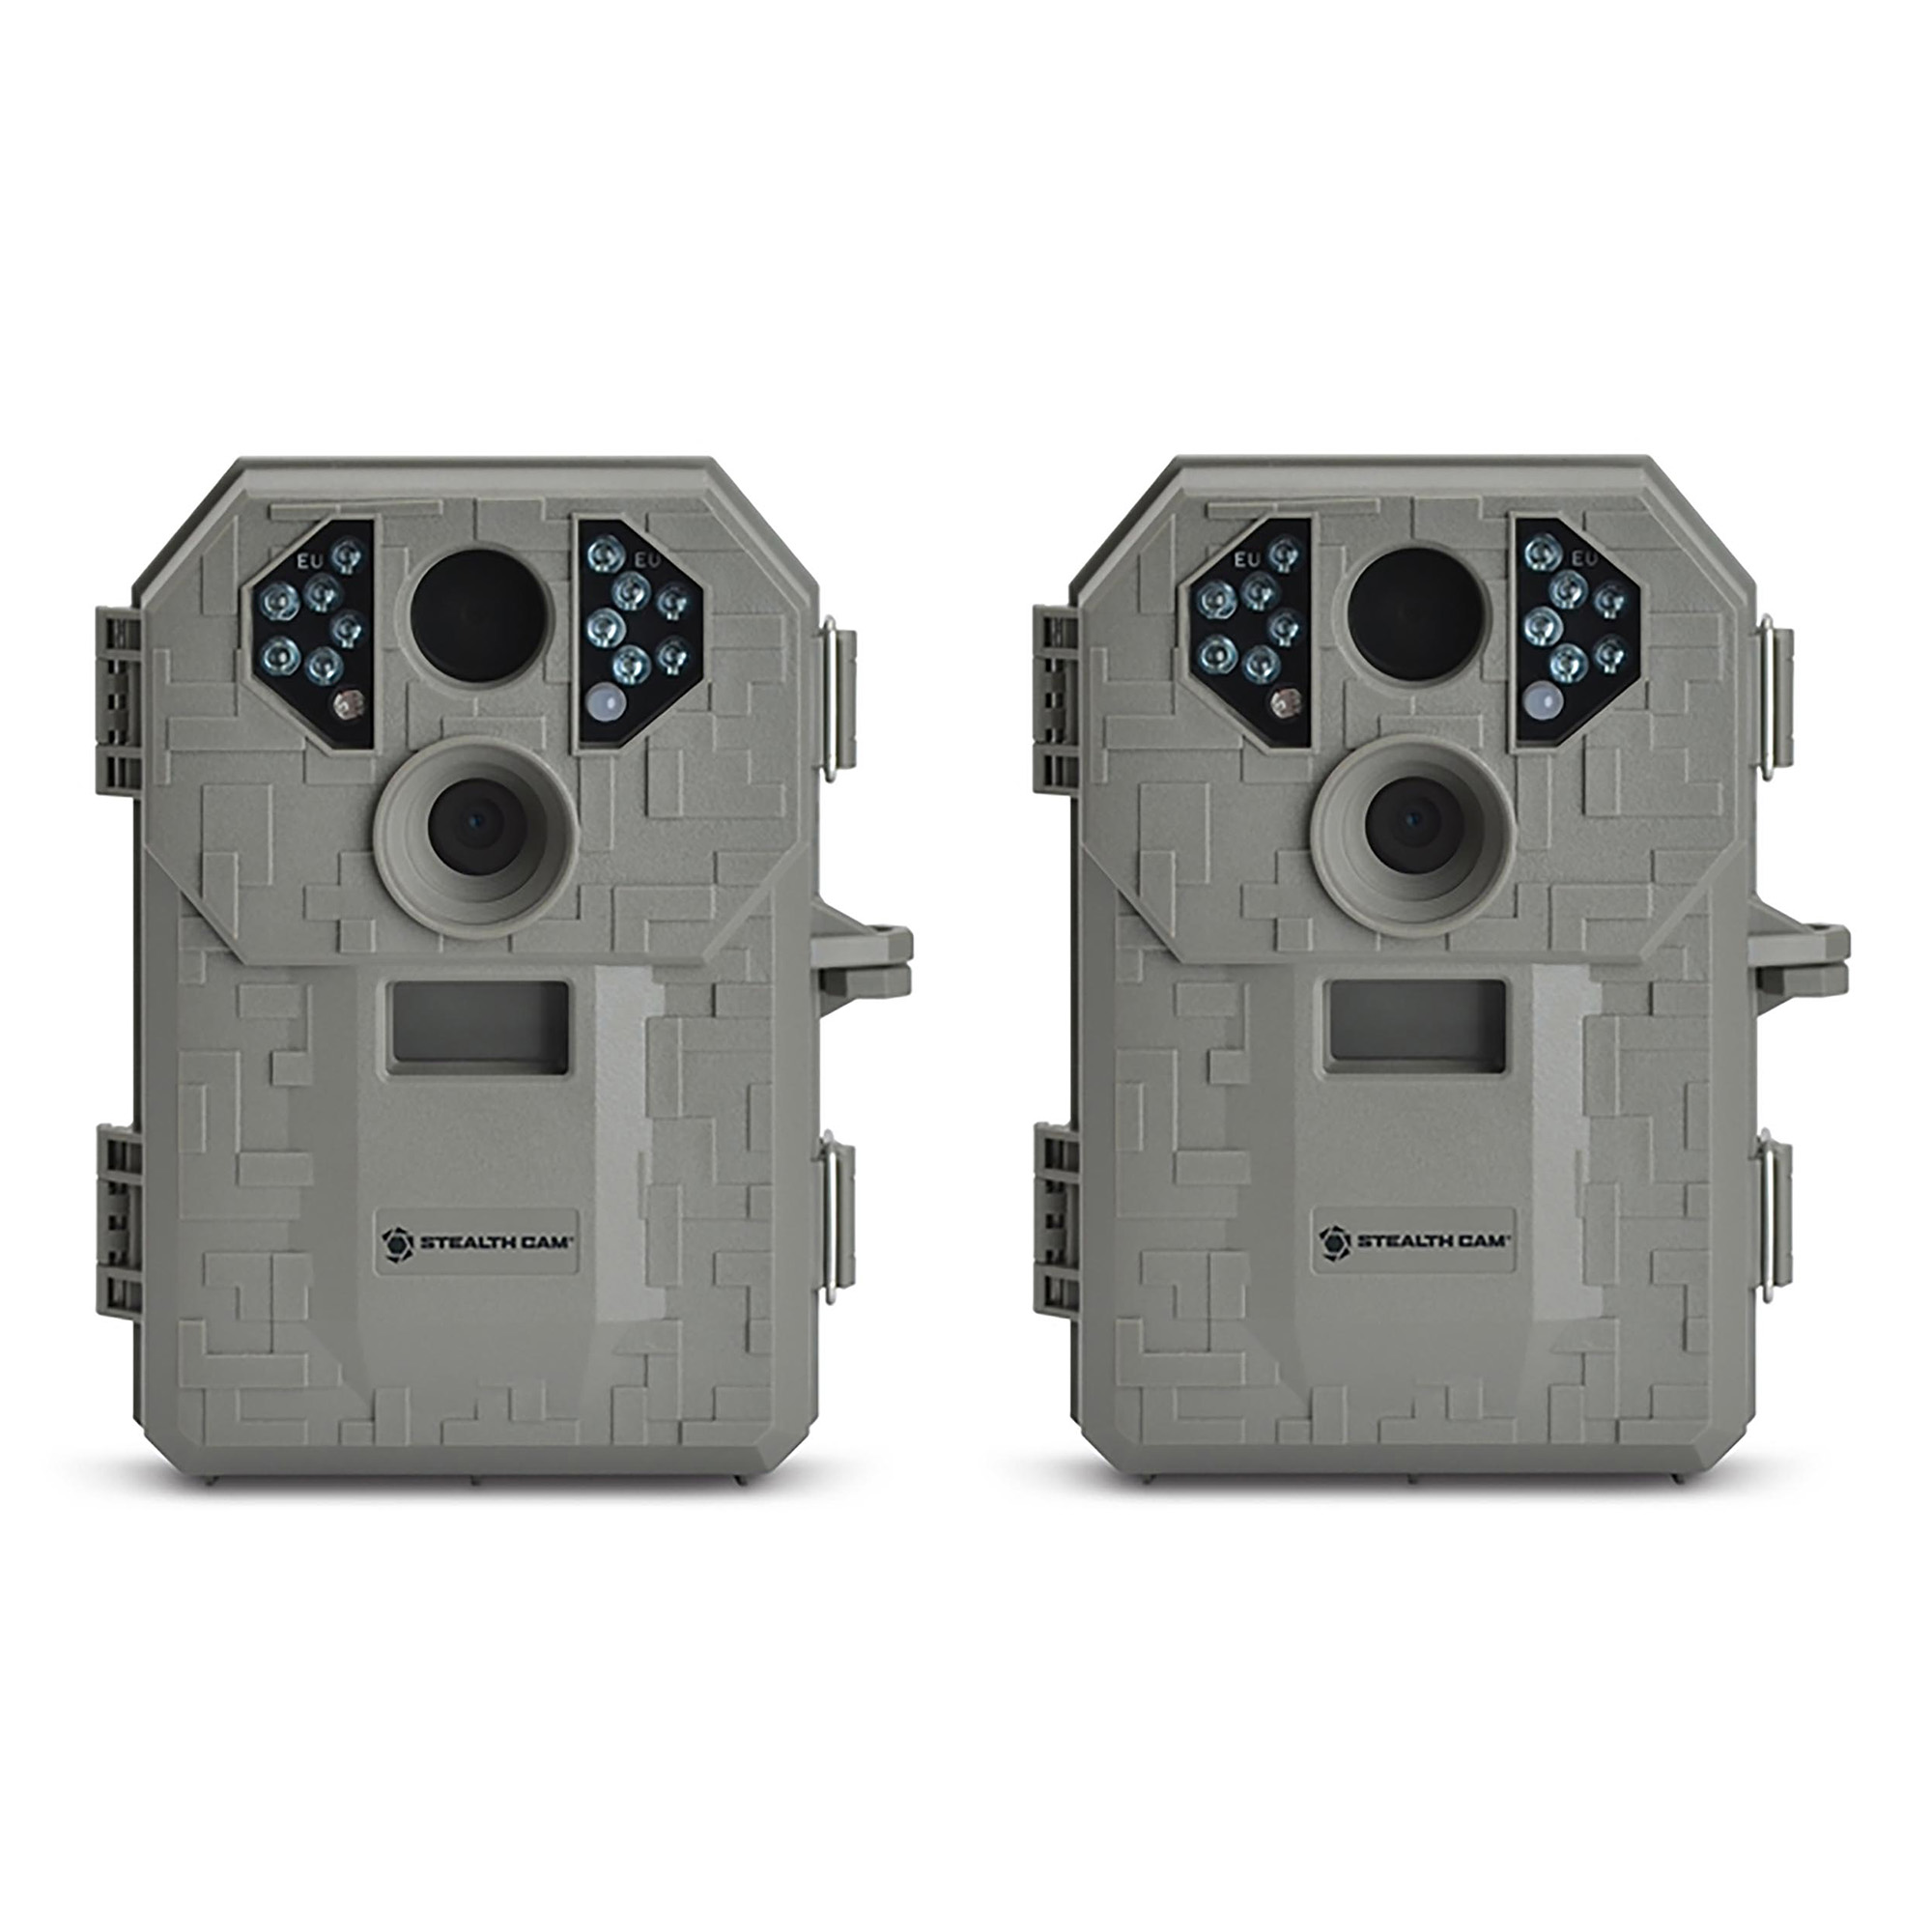 Stealth Cam P12 IR 6.0 MP Scouting Trail Hunting Game Camera with Video (2 Pack) by Stealth Cam